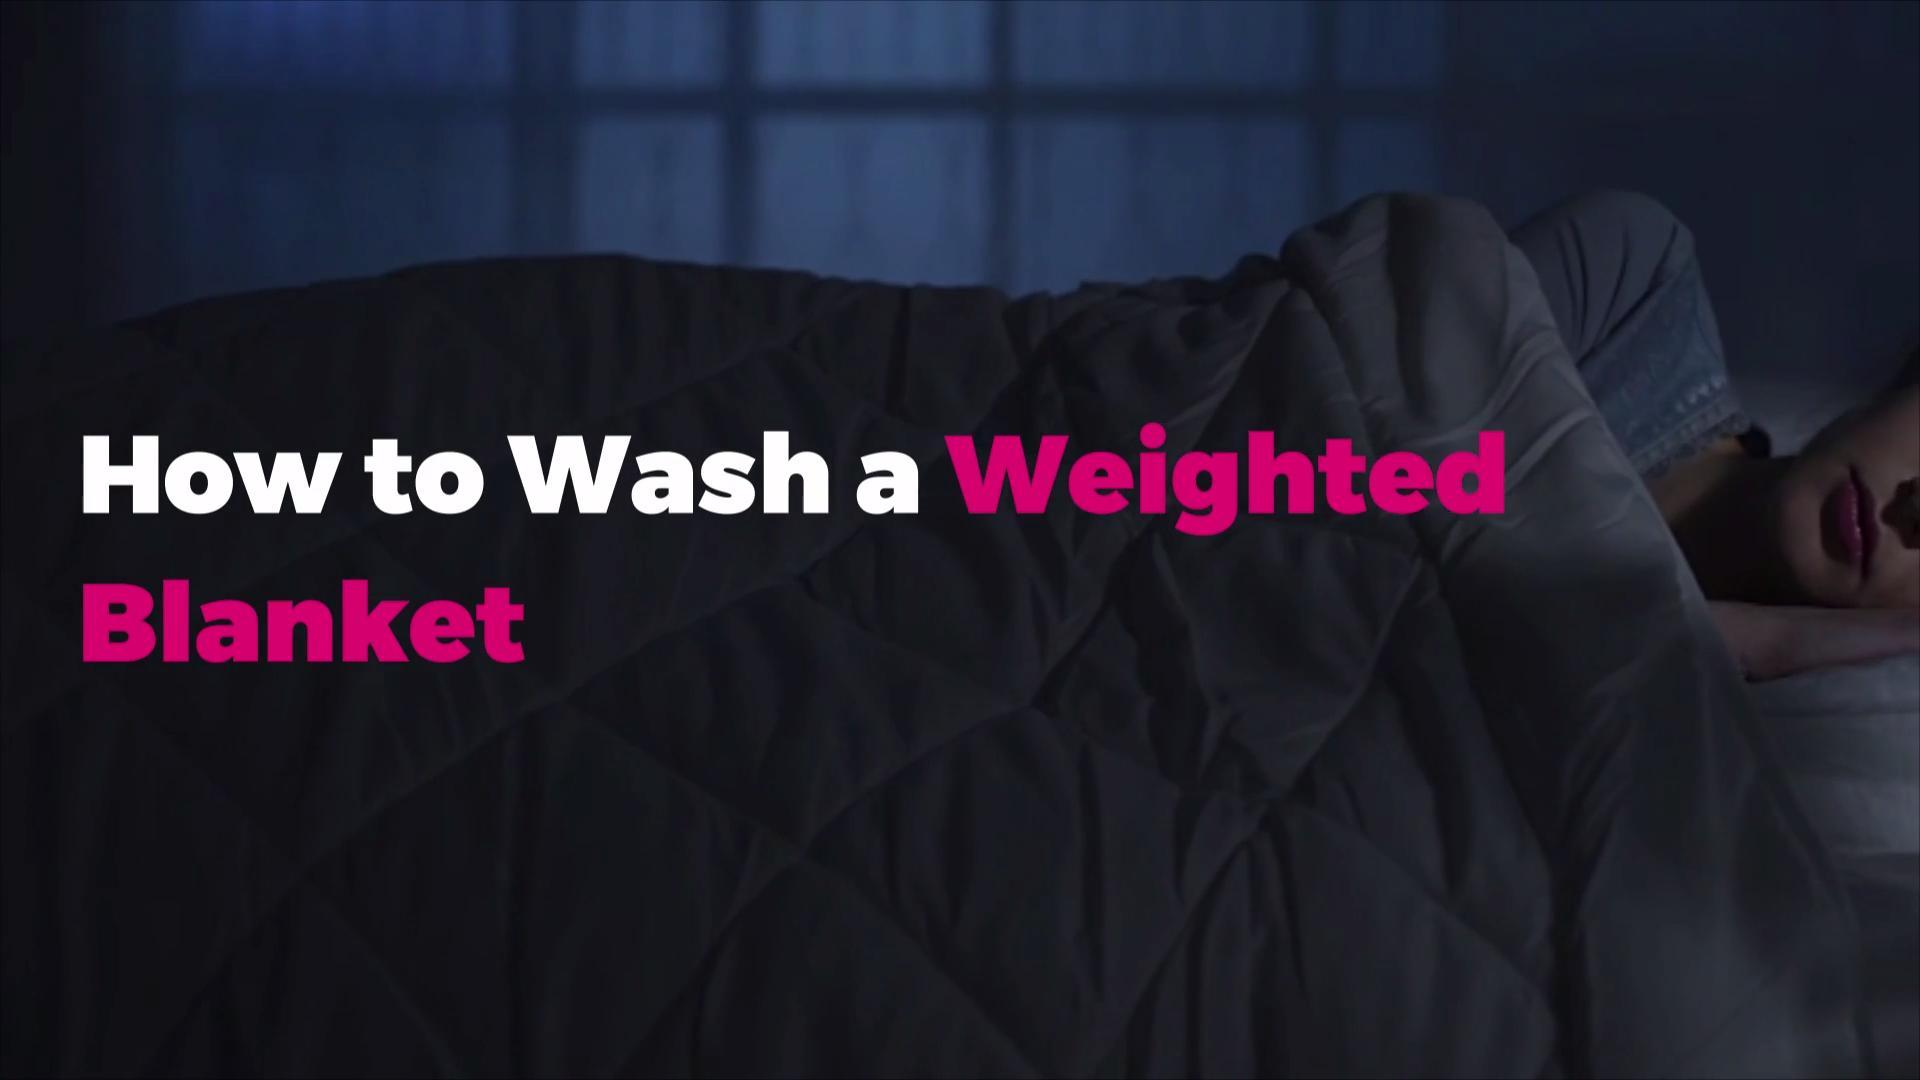 How To Wash A Weighted Blanket Video